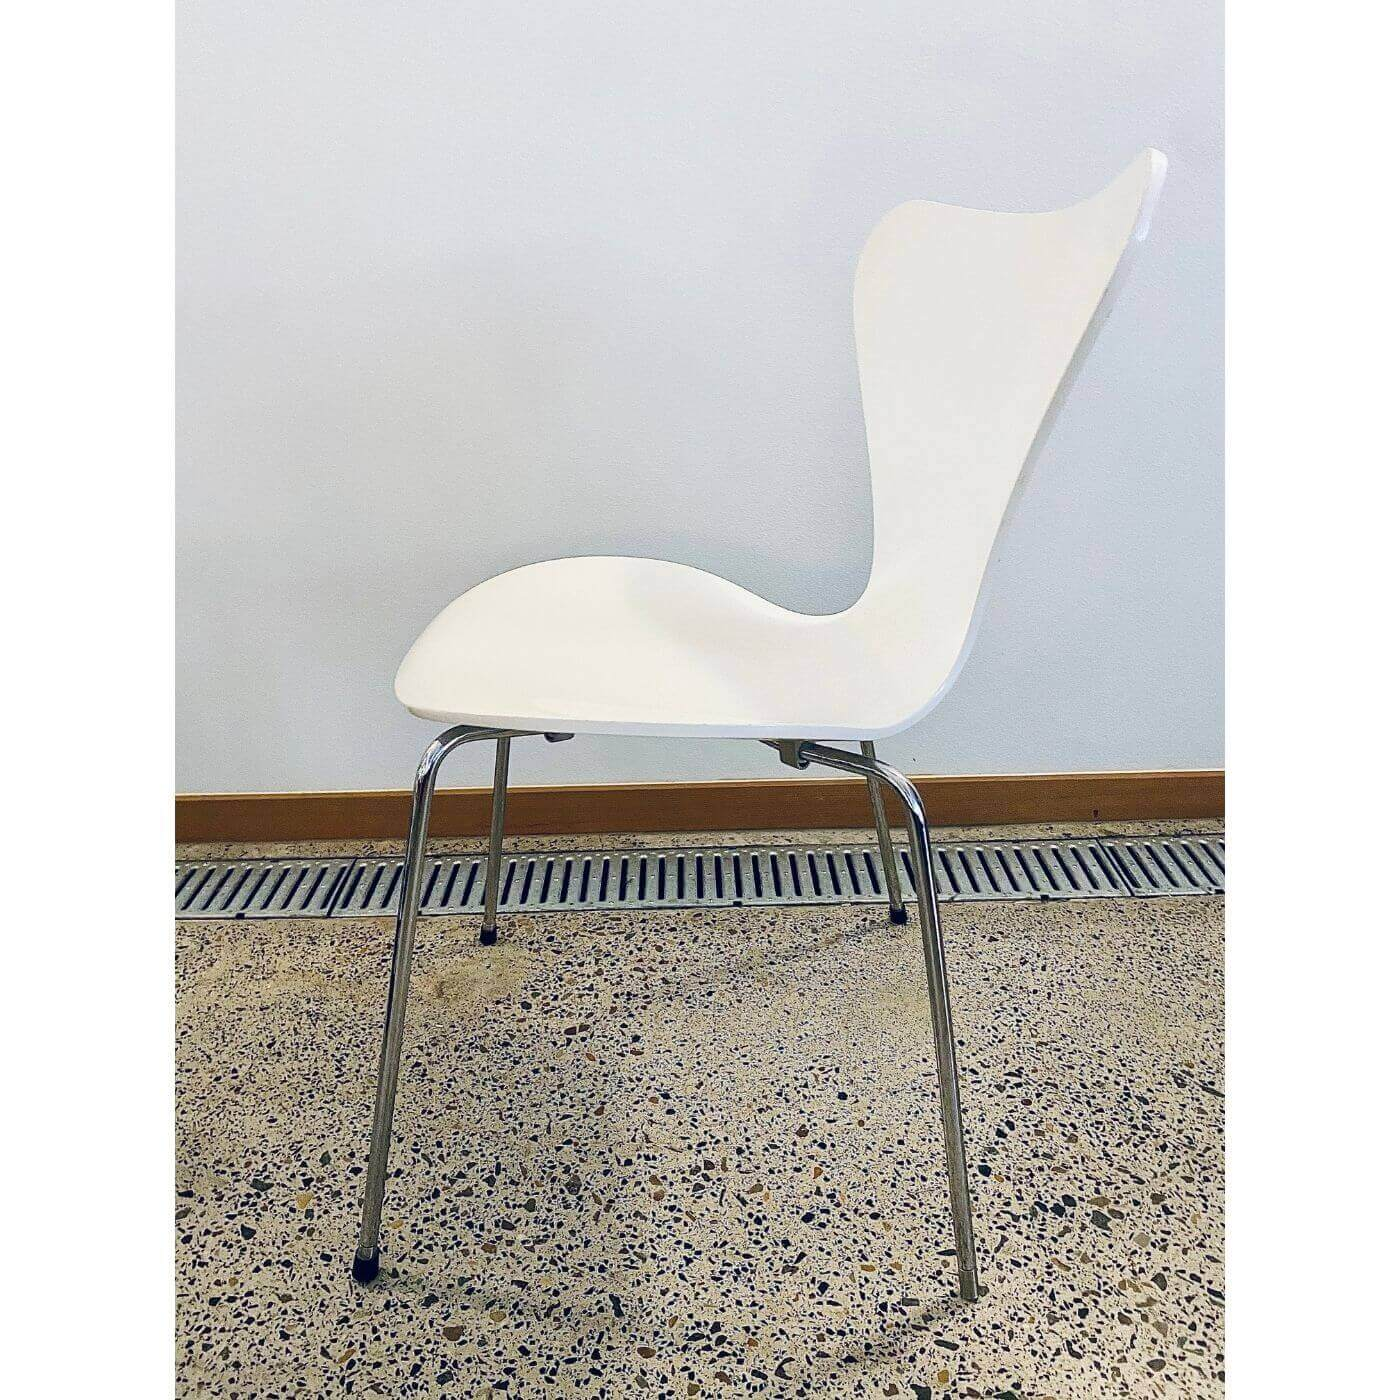 Fritz Hansen Arne Jacobsen Series 7 white lacquer chairs set of 4